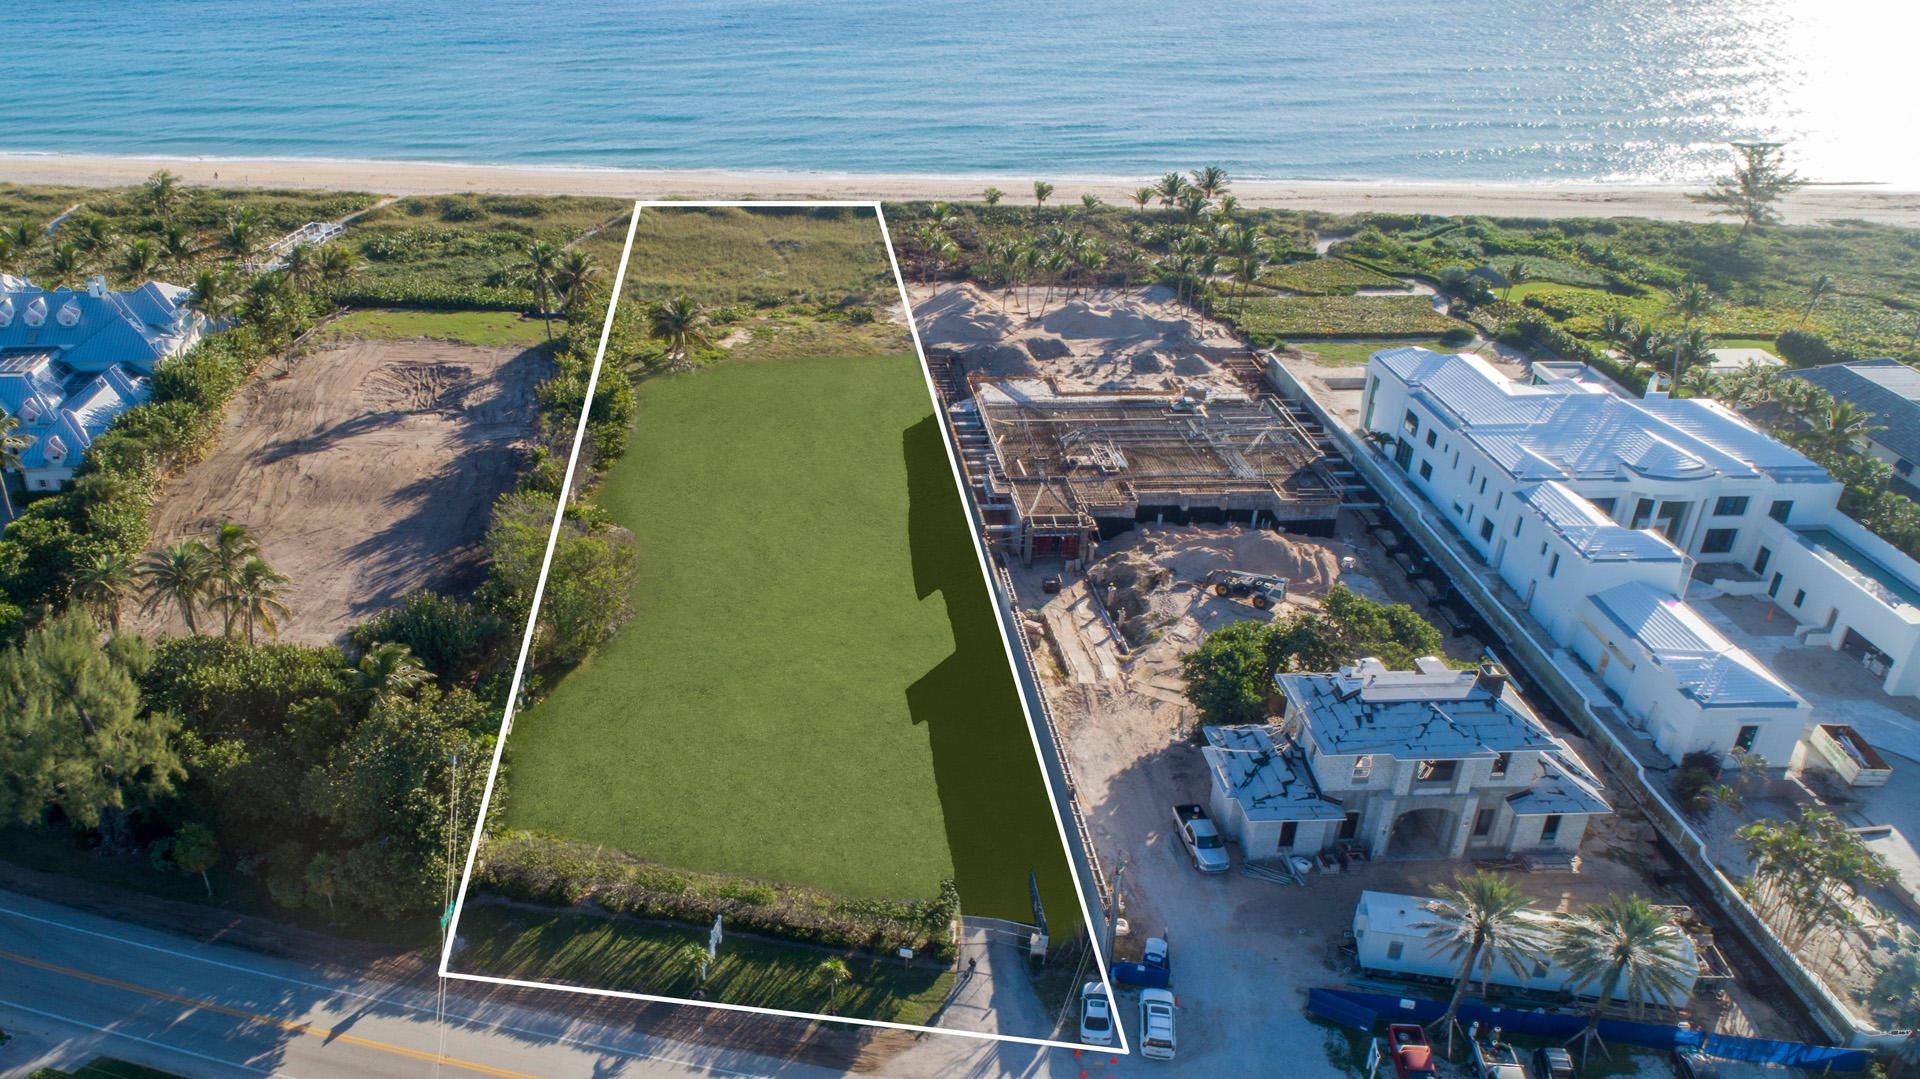 21-46-43, S 120 FT OF N 1055 OF GOV LT 1 LYG E OF OCEAN BLVD Properties For Sale